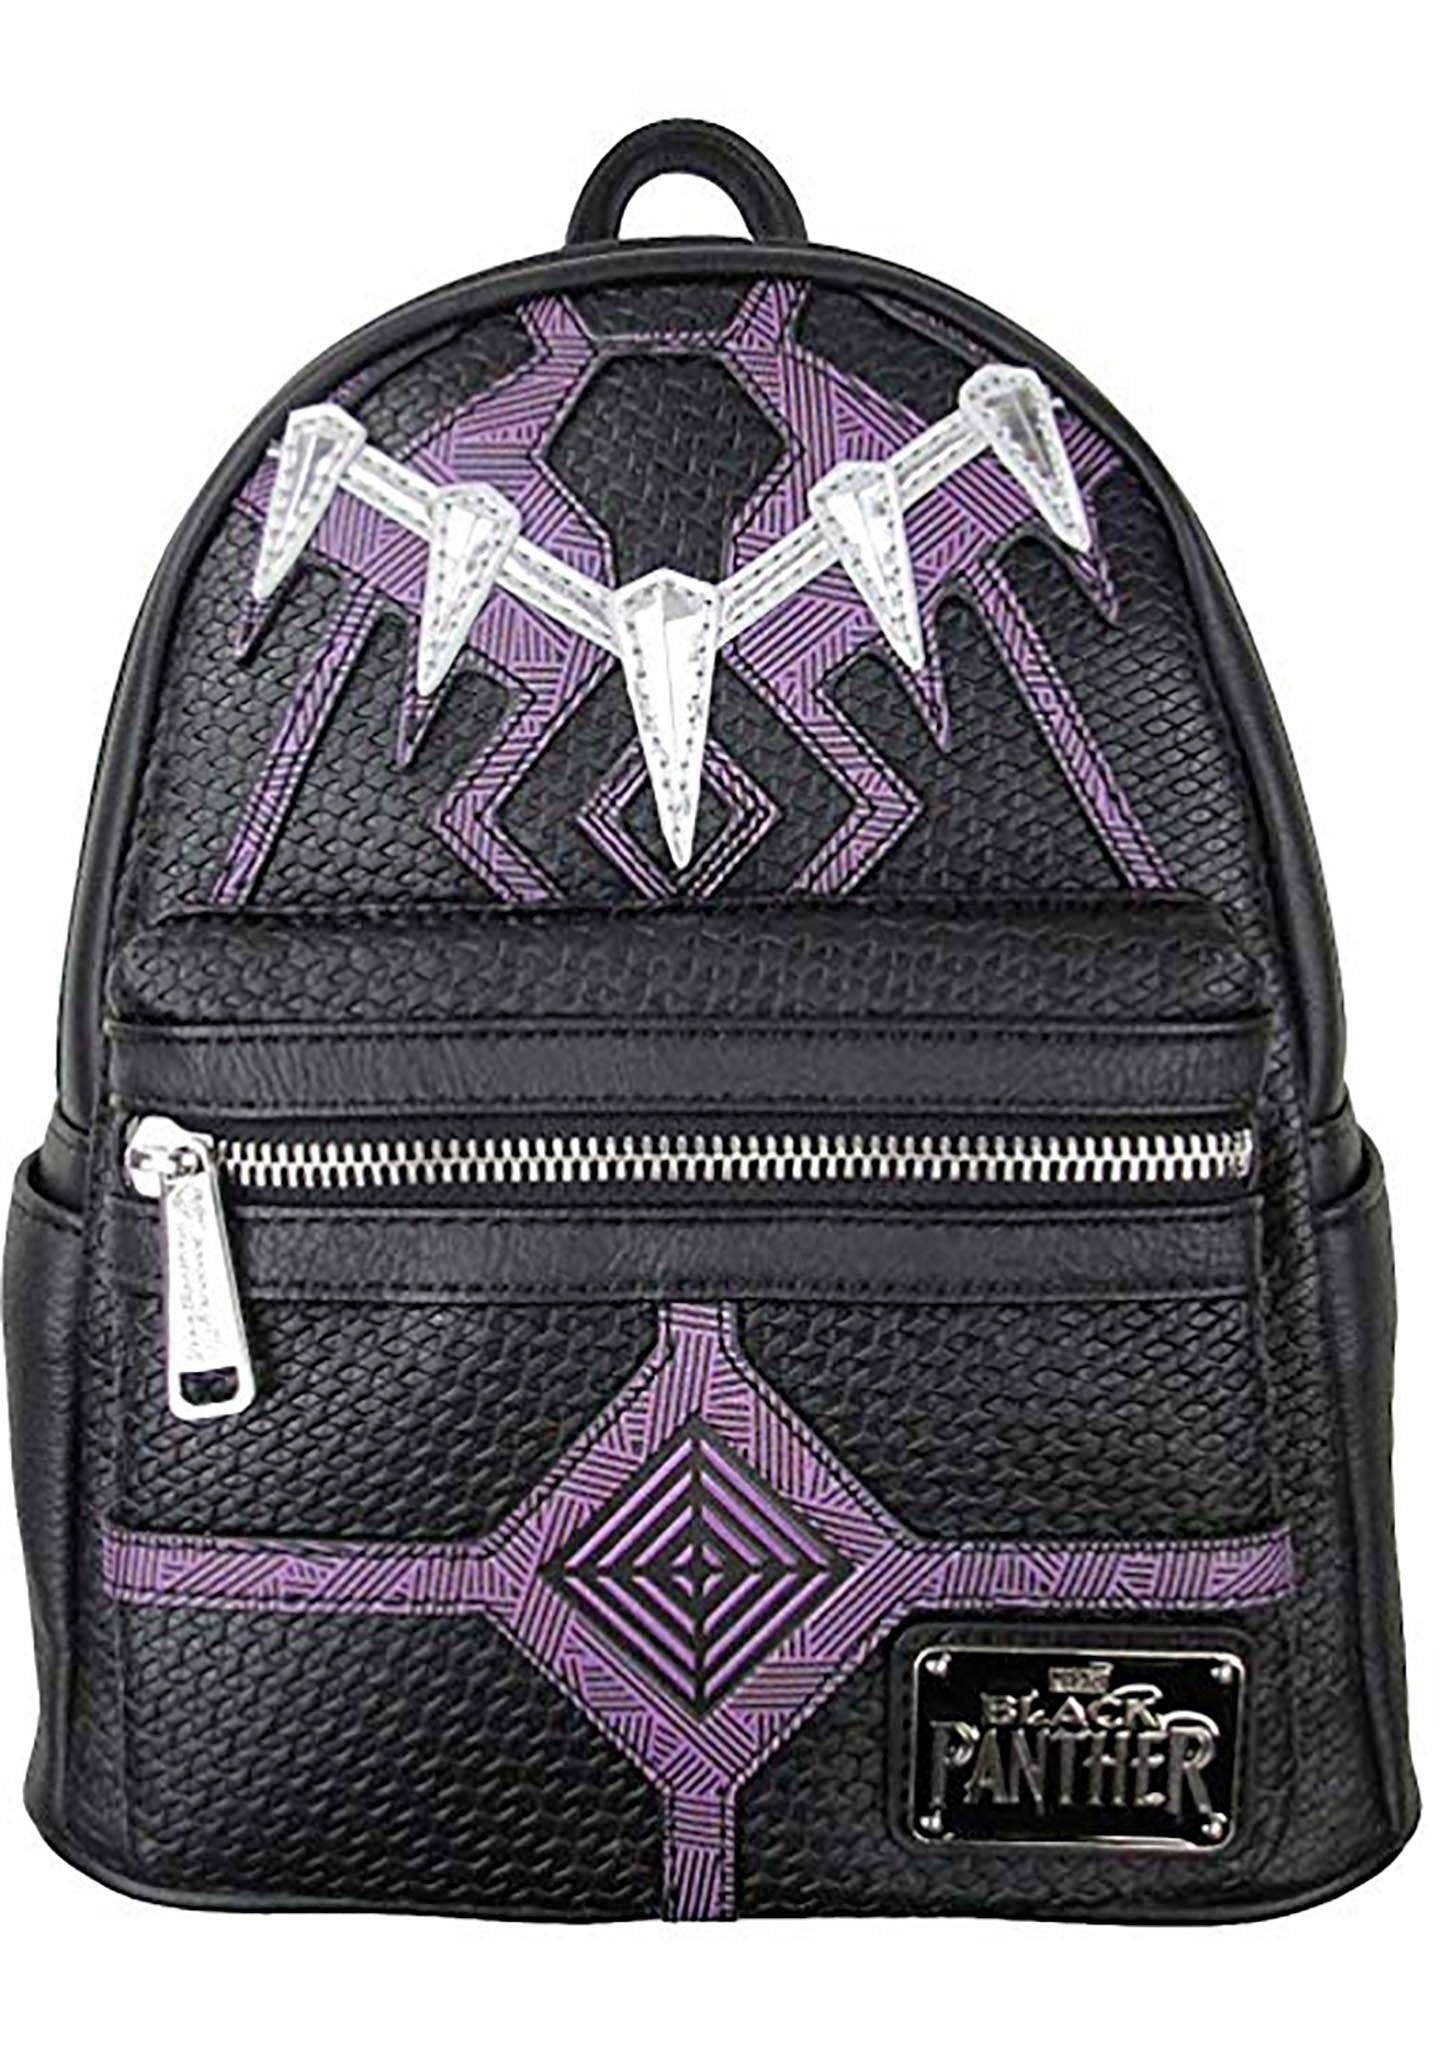 Loungefly X Marvel Black Panther Mini Backpack